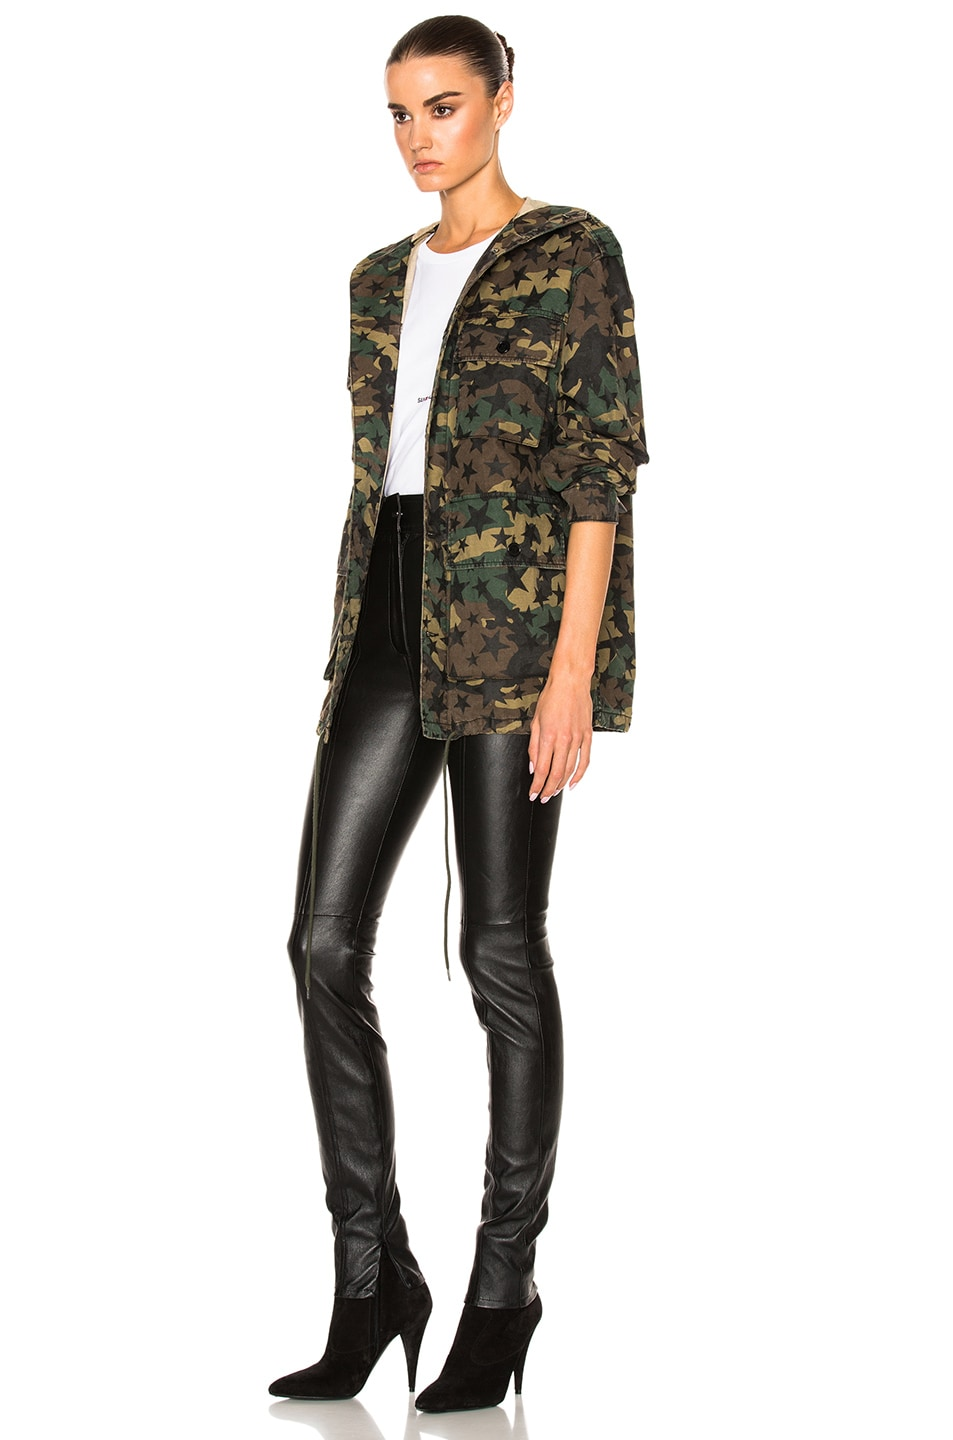 Image 3 of Saint Laurent Army Camouflage Jacket with Stars in Army Camouflage